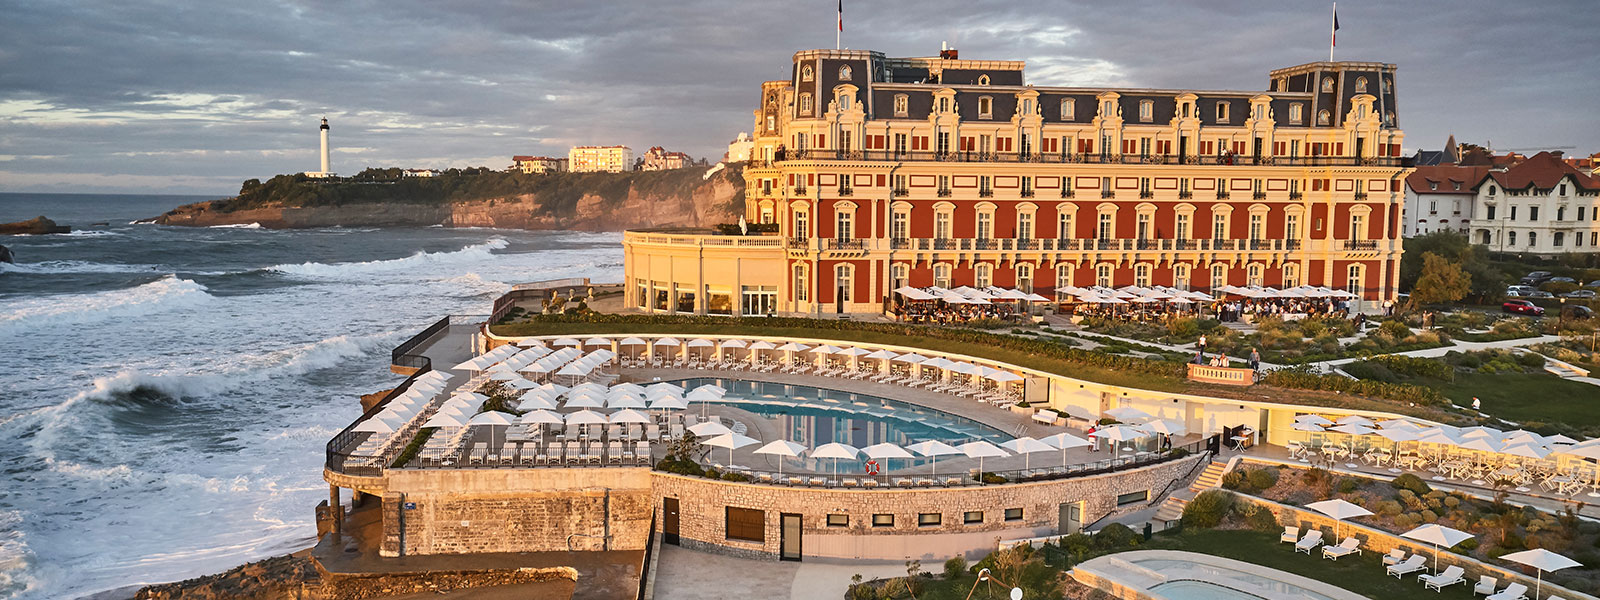 The Hotel du Palais in Biarritz, a historic spa hotel